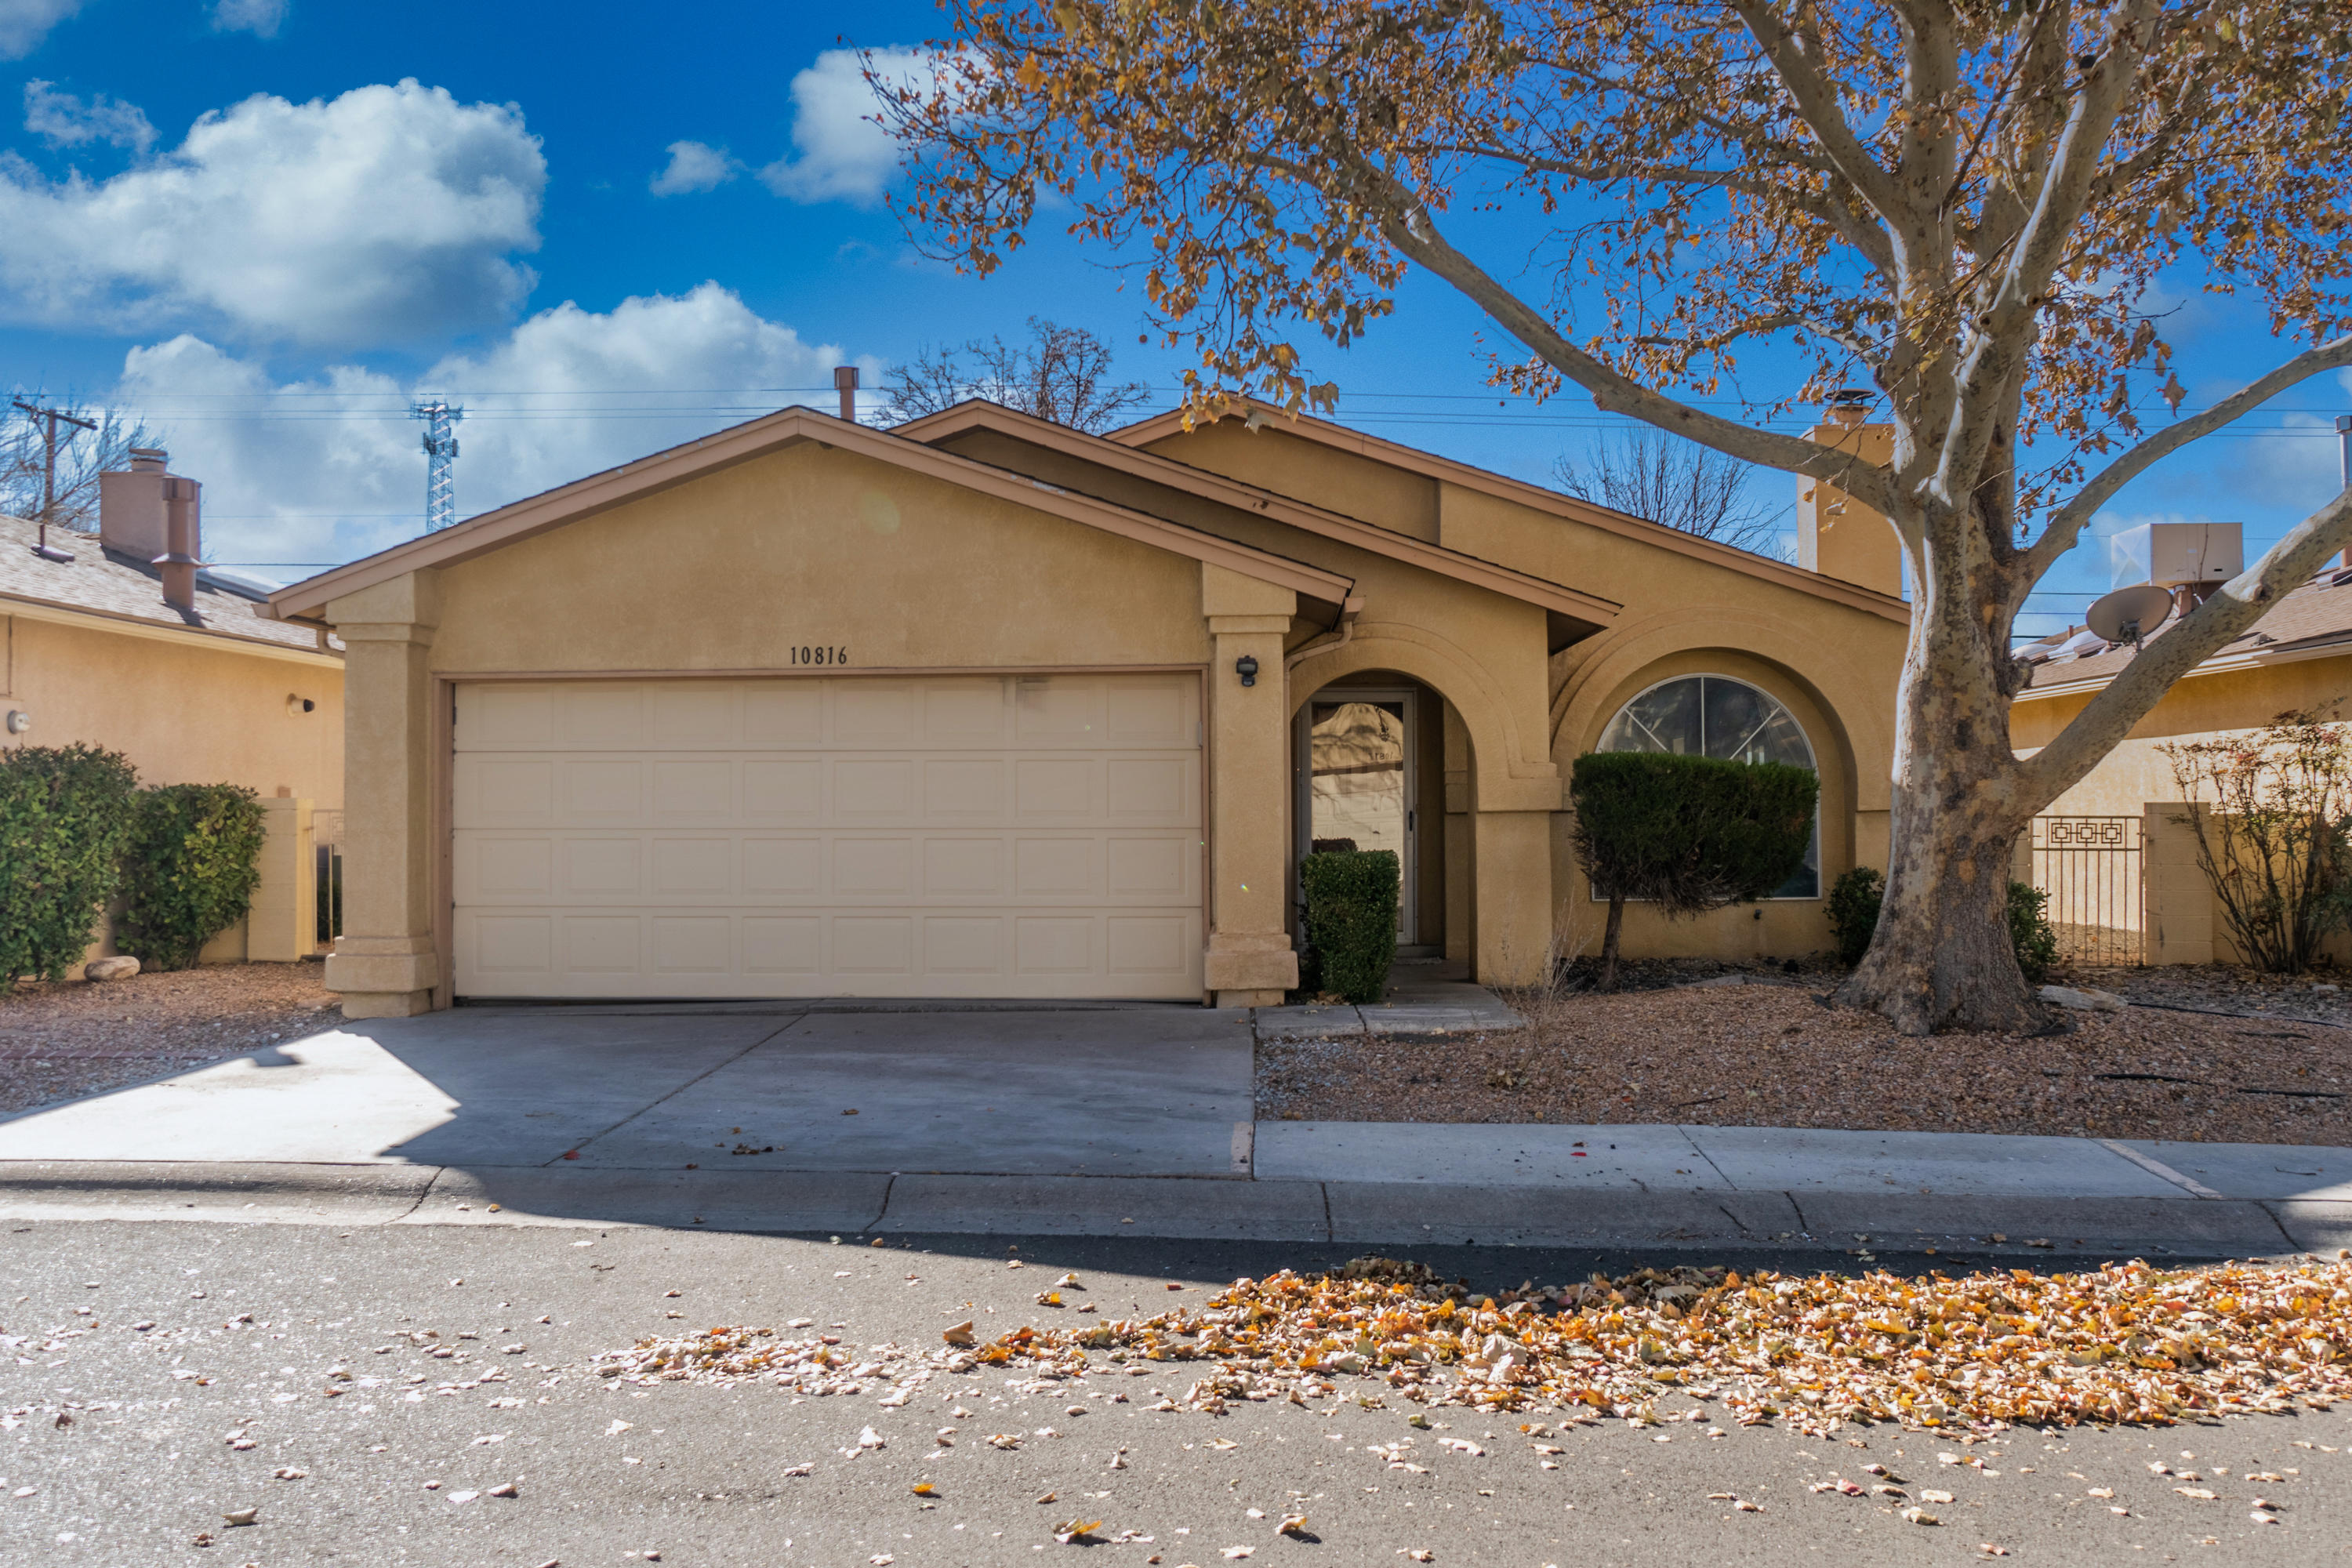 What a wonderful place to live! Not only due to the 50+ list of upgrades the owner has added to the home, but also due to the generous amount of amenities this home comes with.  So to begin! This home has new granite counter tops, tile floors, new light fixtures, and majority of the house contains 5.0 and 7.0 speakers wired and mounted for a full sound immersion! To name a few, there is also tasteful European vessel sinks added to the bathroom & heated toilet seats. And plenty more! Now on to the amenities , for just $115 a month you receive  2 pools, 2 large parks, duck pond, workout room, saunas, tennis courts, common areas, streets and clubhouse. Land is leased also at $123 a month ,but may be bought out.  So book your showing today and explore your new private town!